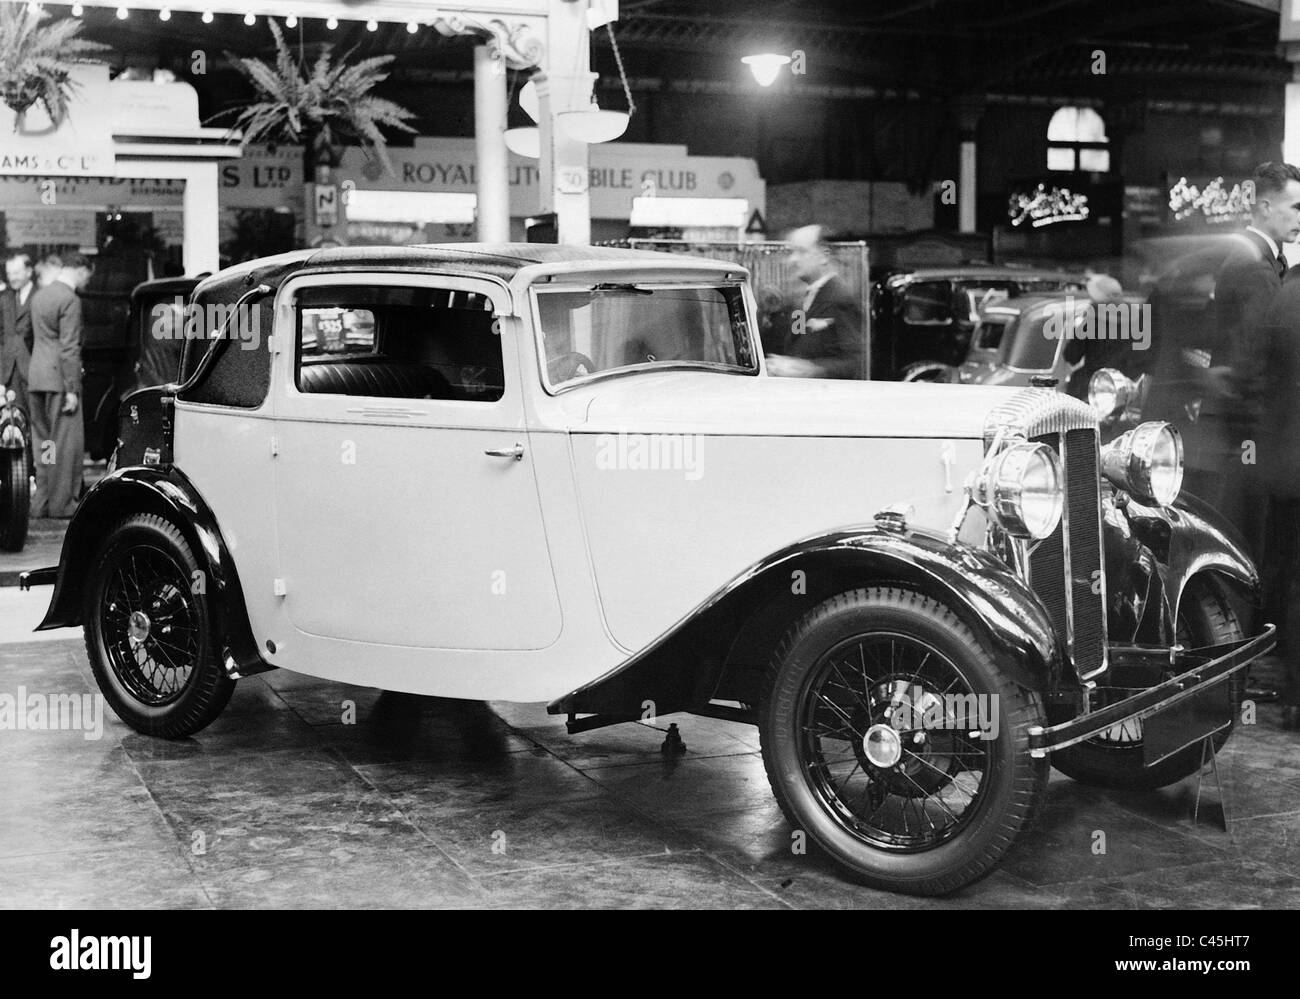 Model of a Mercedes-Benz at the Automobile show in the Olympia Exhibition halls in London, 1936 - Stock Image